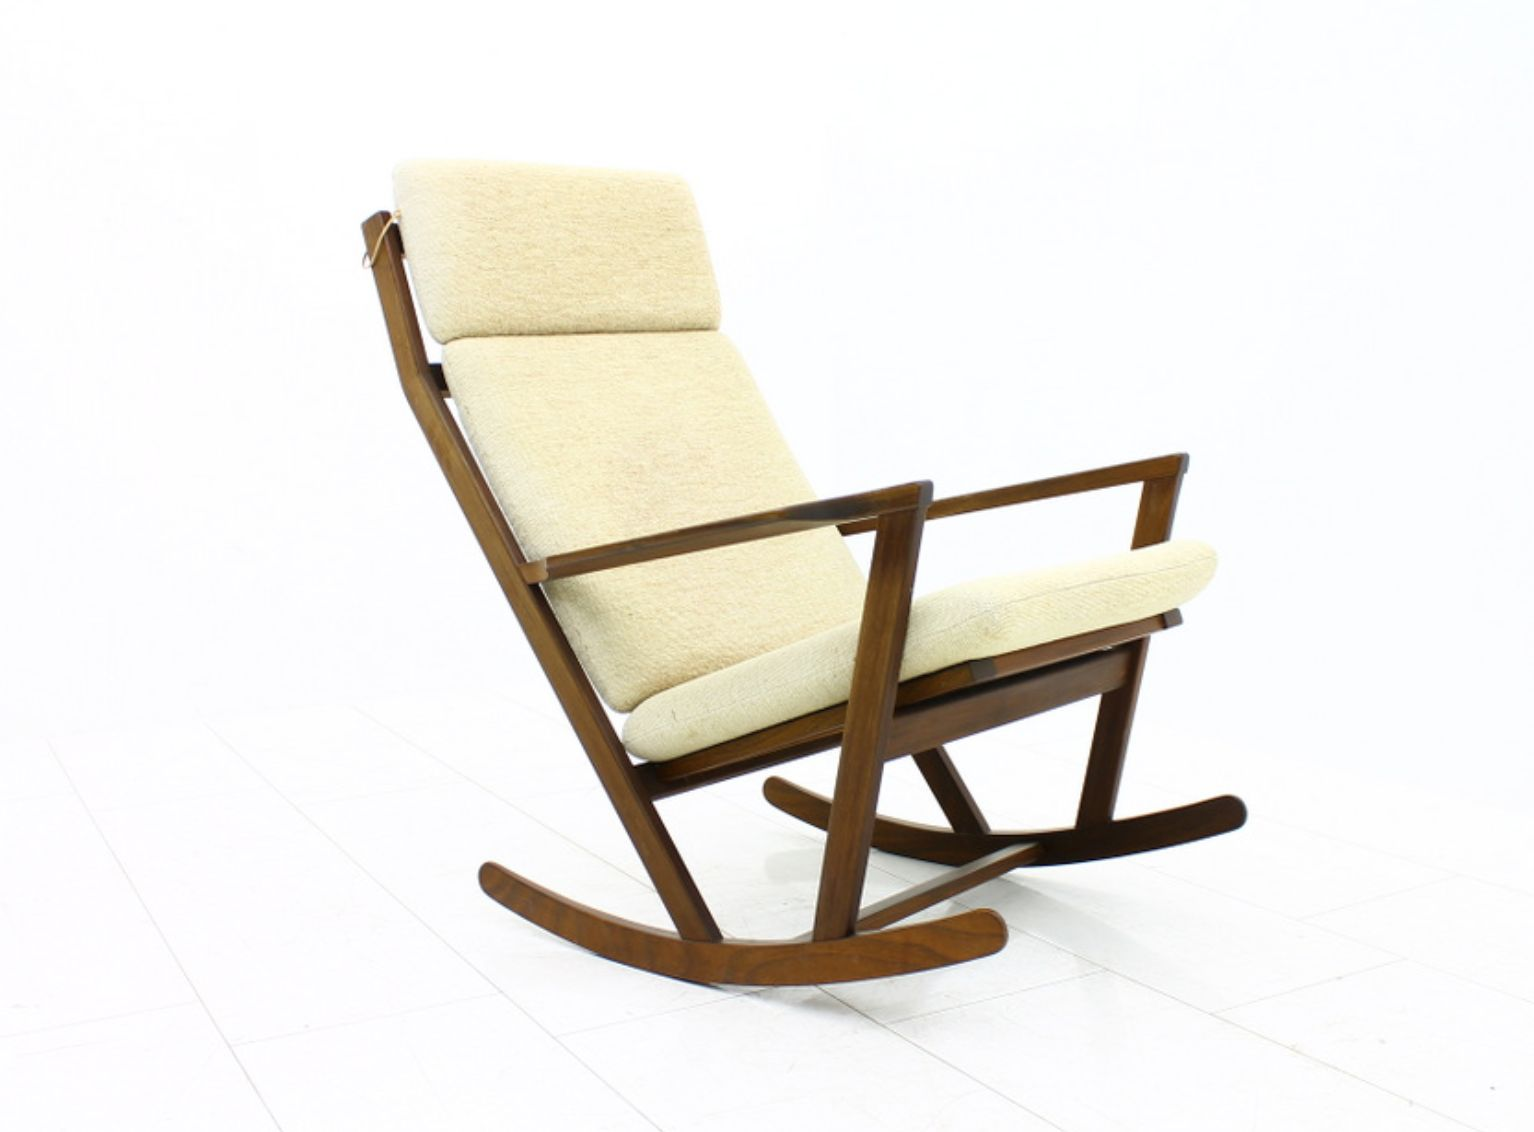 Rocking Chair by Poul Volther for Frem Rojle 1960s for